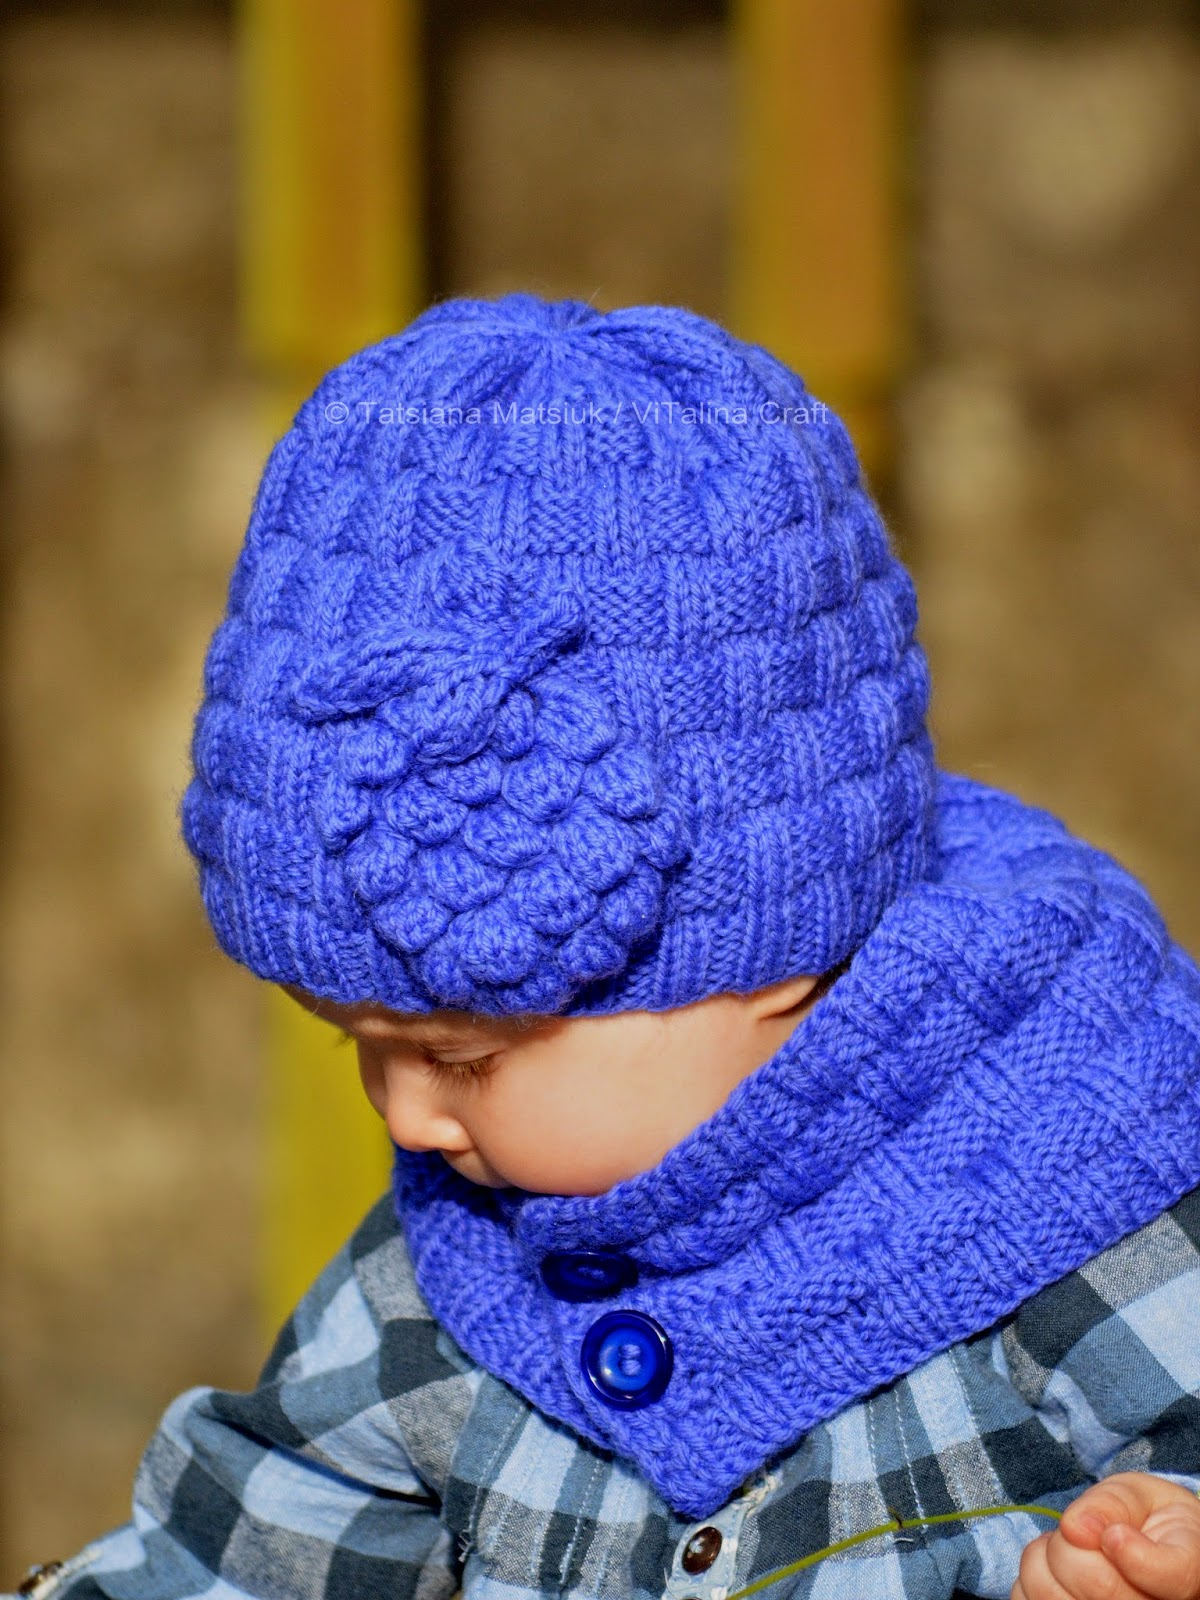 Grapevine Hat and Scarf Knitting Pattern ViTalina Craft